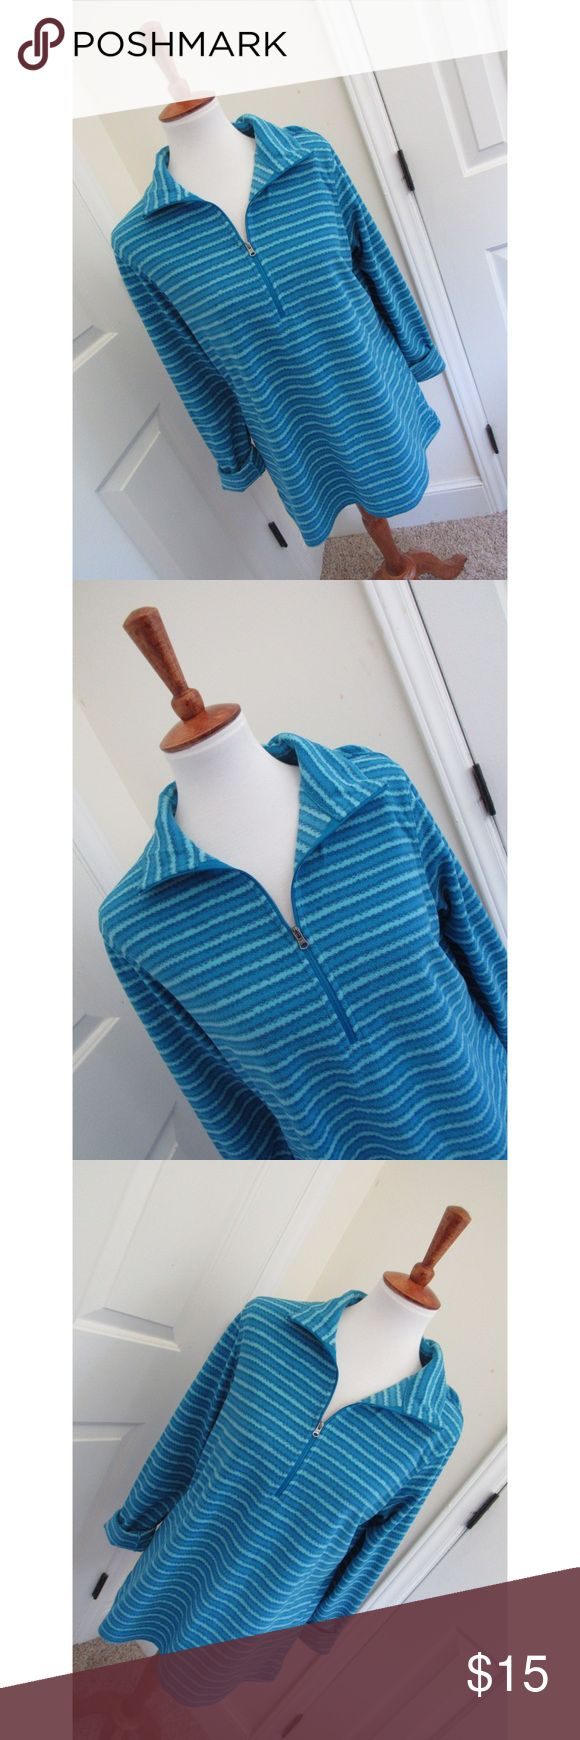 Columbia blue fleece sweater - Size L  - I don't trade or sell outside of posh. - I ship every single day!  - All items come from a smoke free home!  - If you have anymore questions just let me know and I would be happy to help! 🙂 Columbia Jackets & Coats